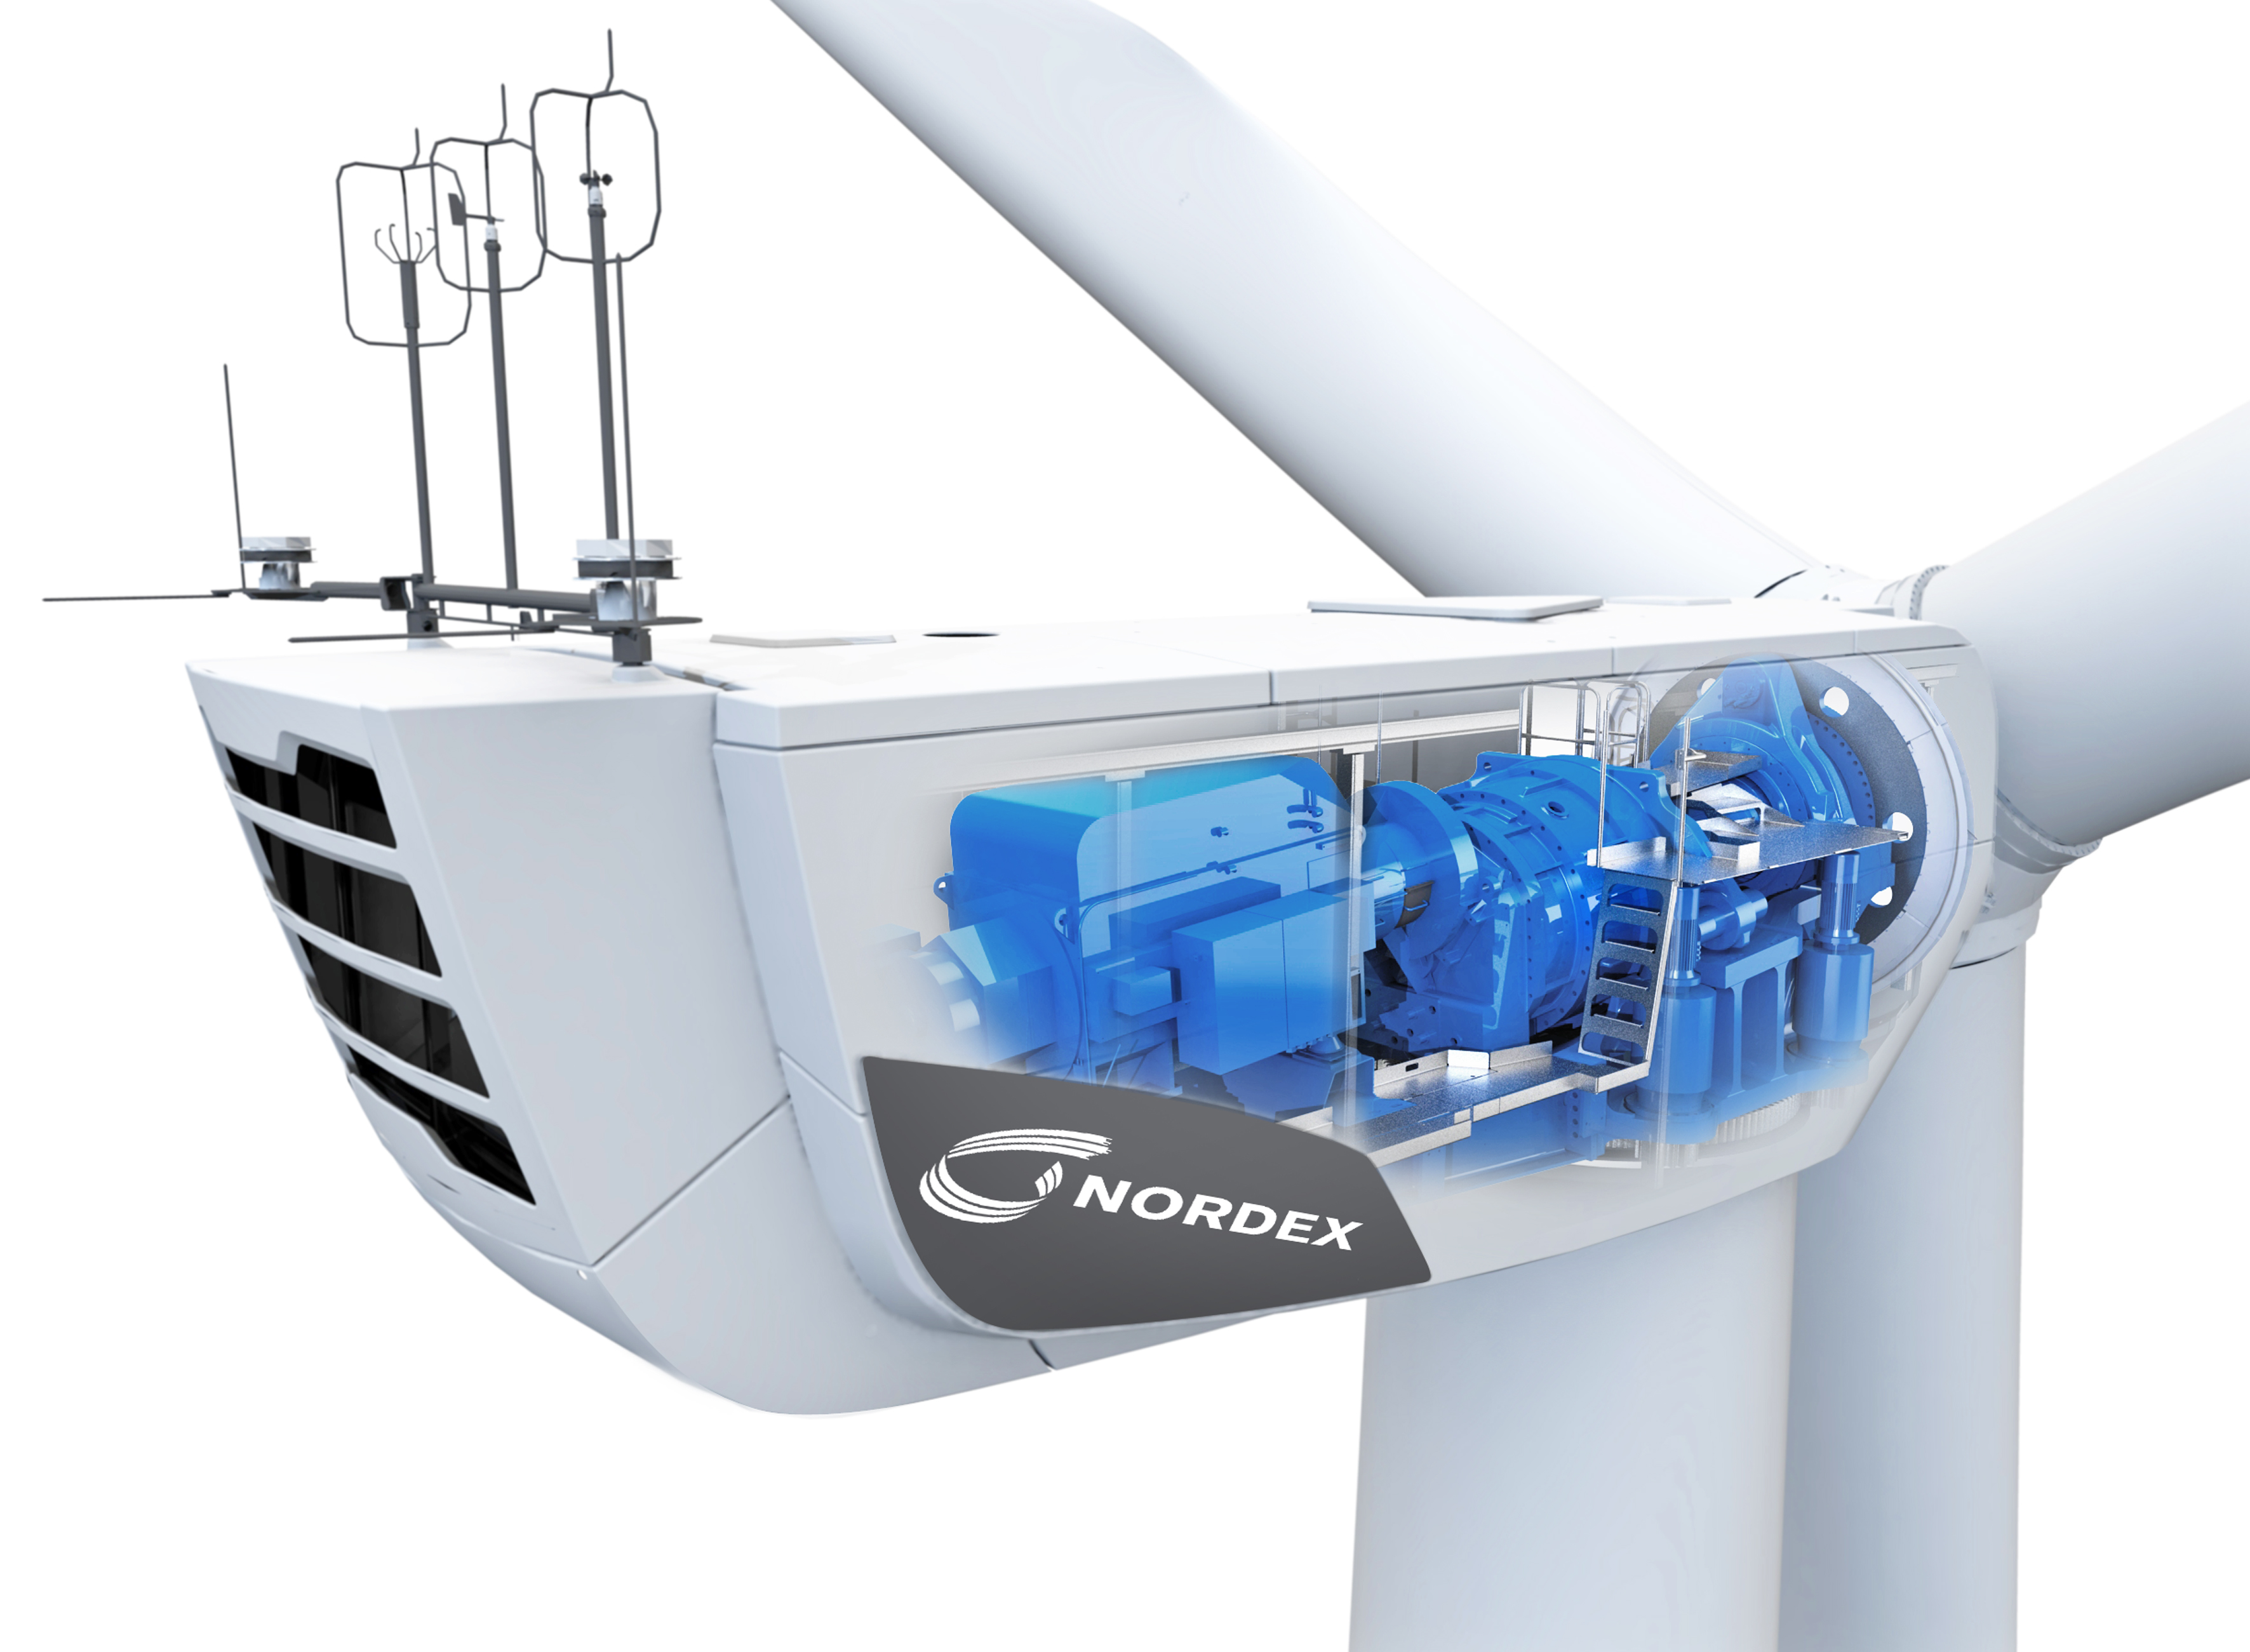 nordex_wind turbines-wind energy